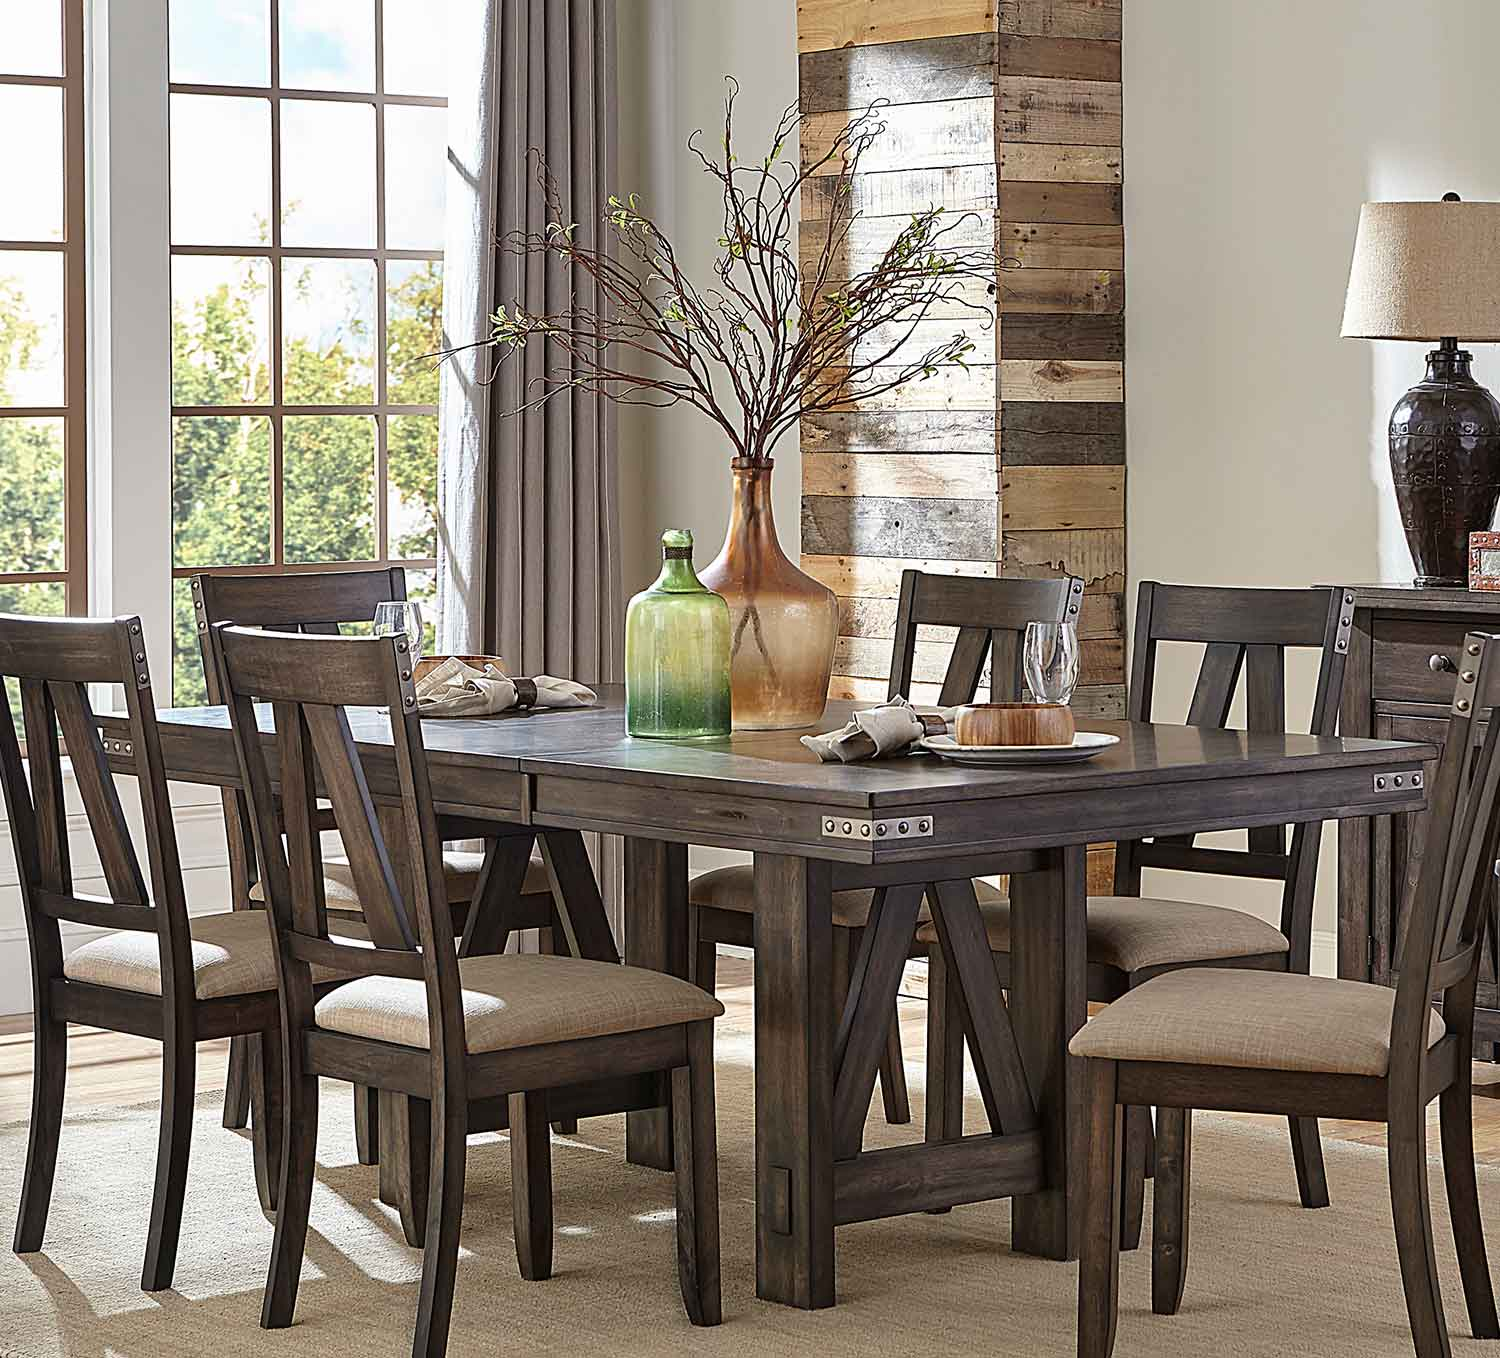 Homelegance Mattawa Rectangular Dining Table with Butterfly Leaf - Brown/Hints of Gray Undertone